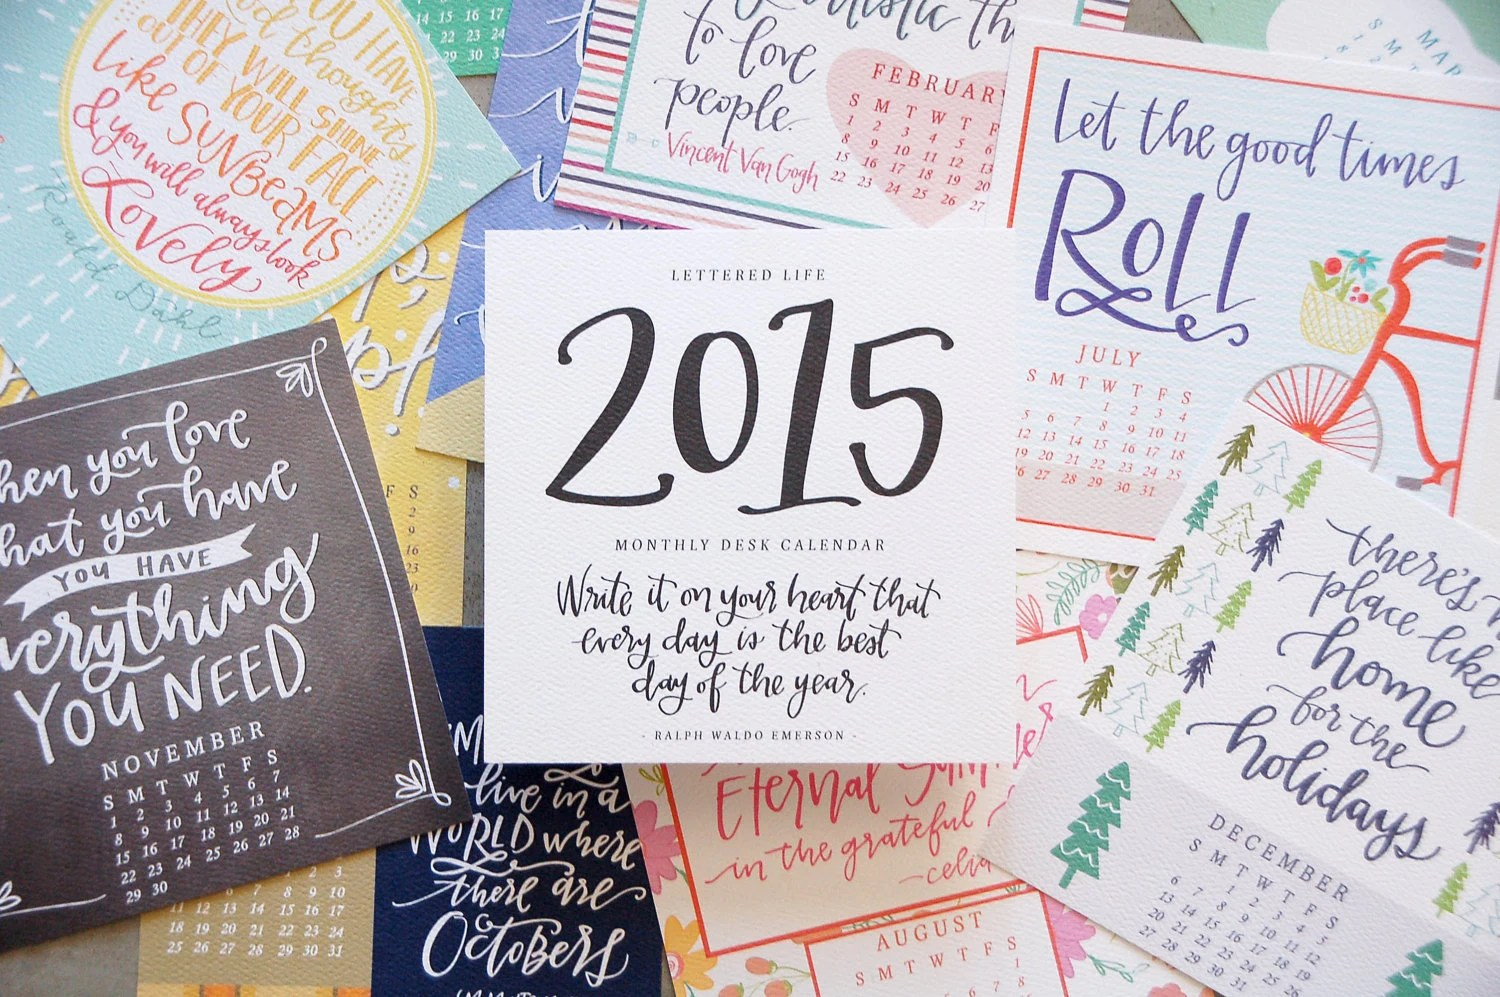 Baby Sack Onesie 2015 Inspirational Desk Calendar Handlettered Quote Calendar